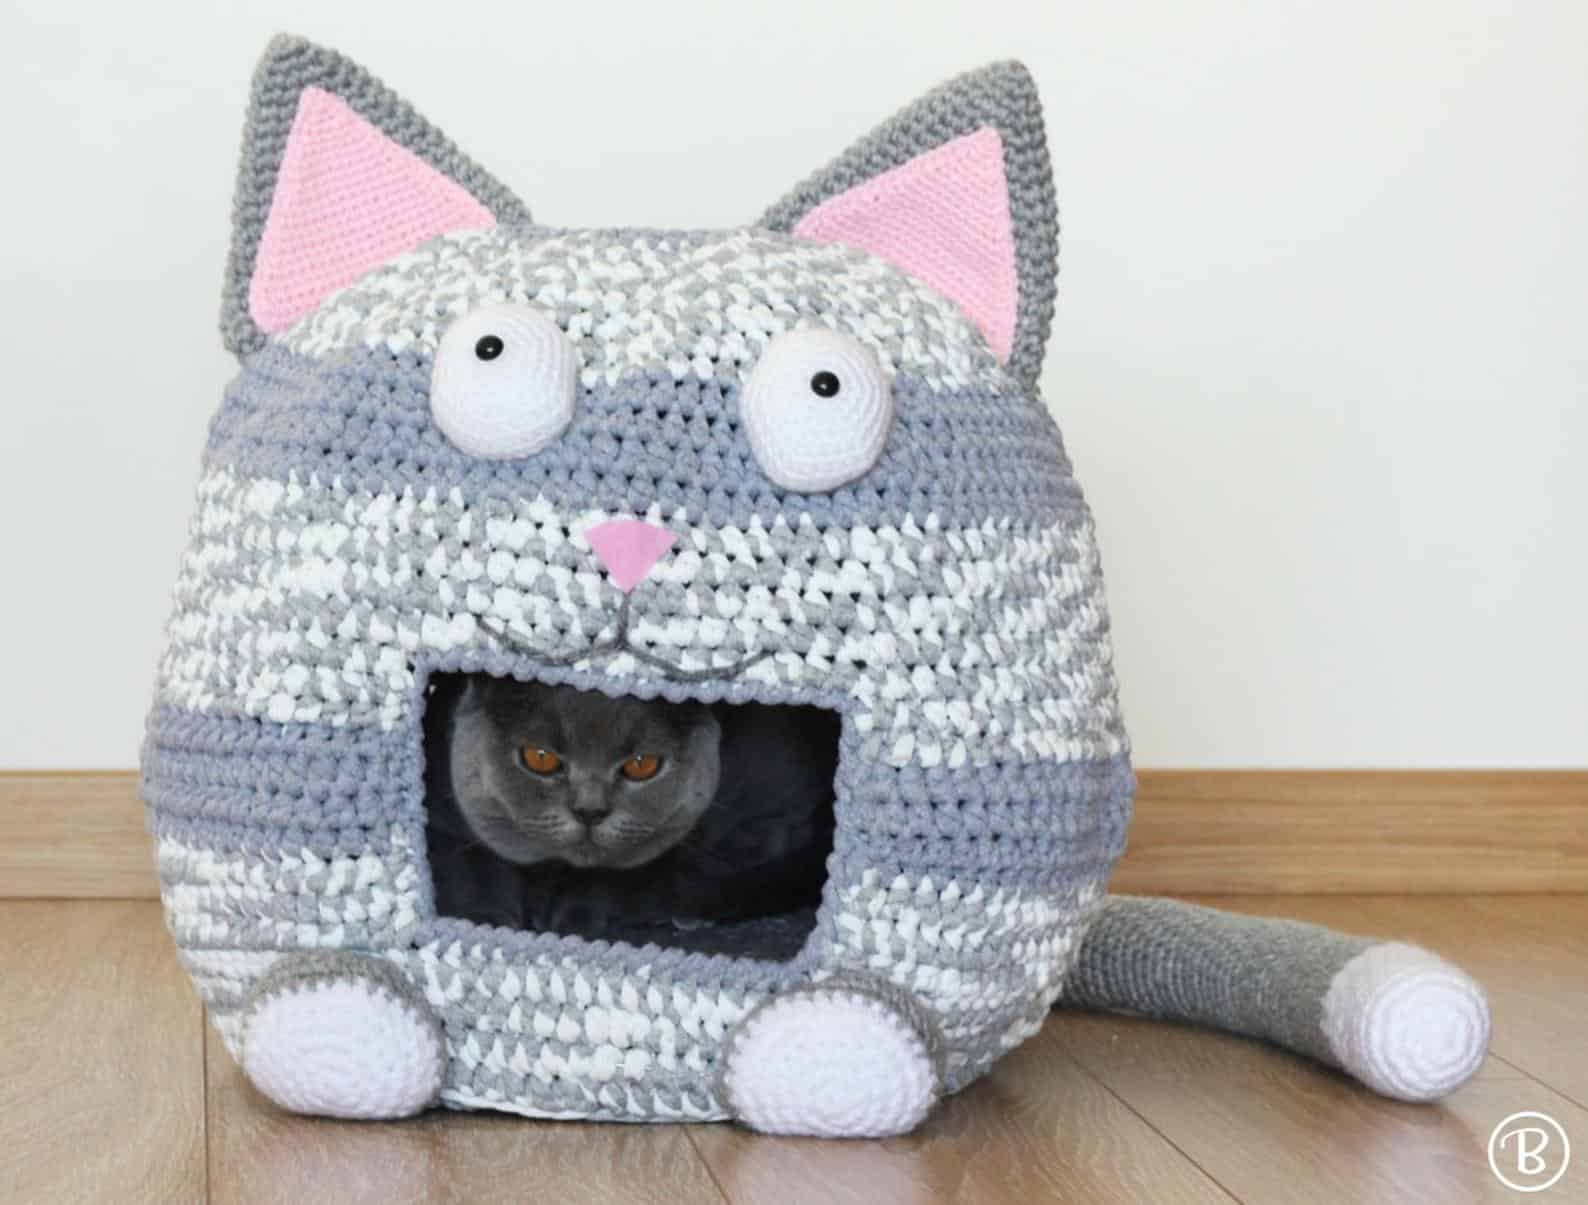 Cat shaped crocheted kitty bed